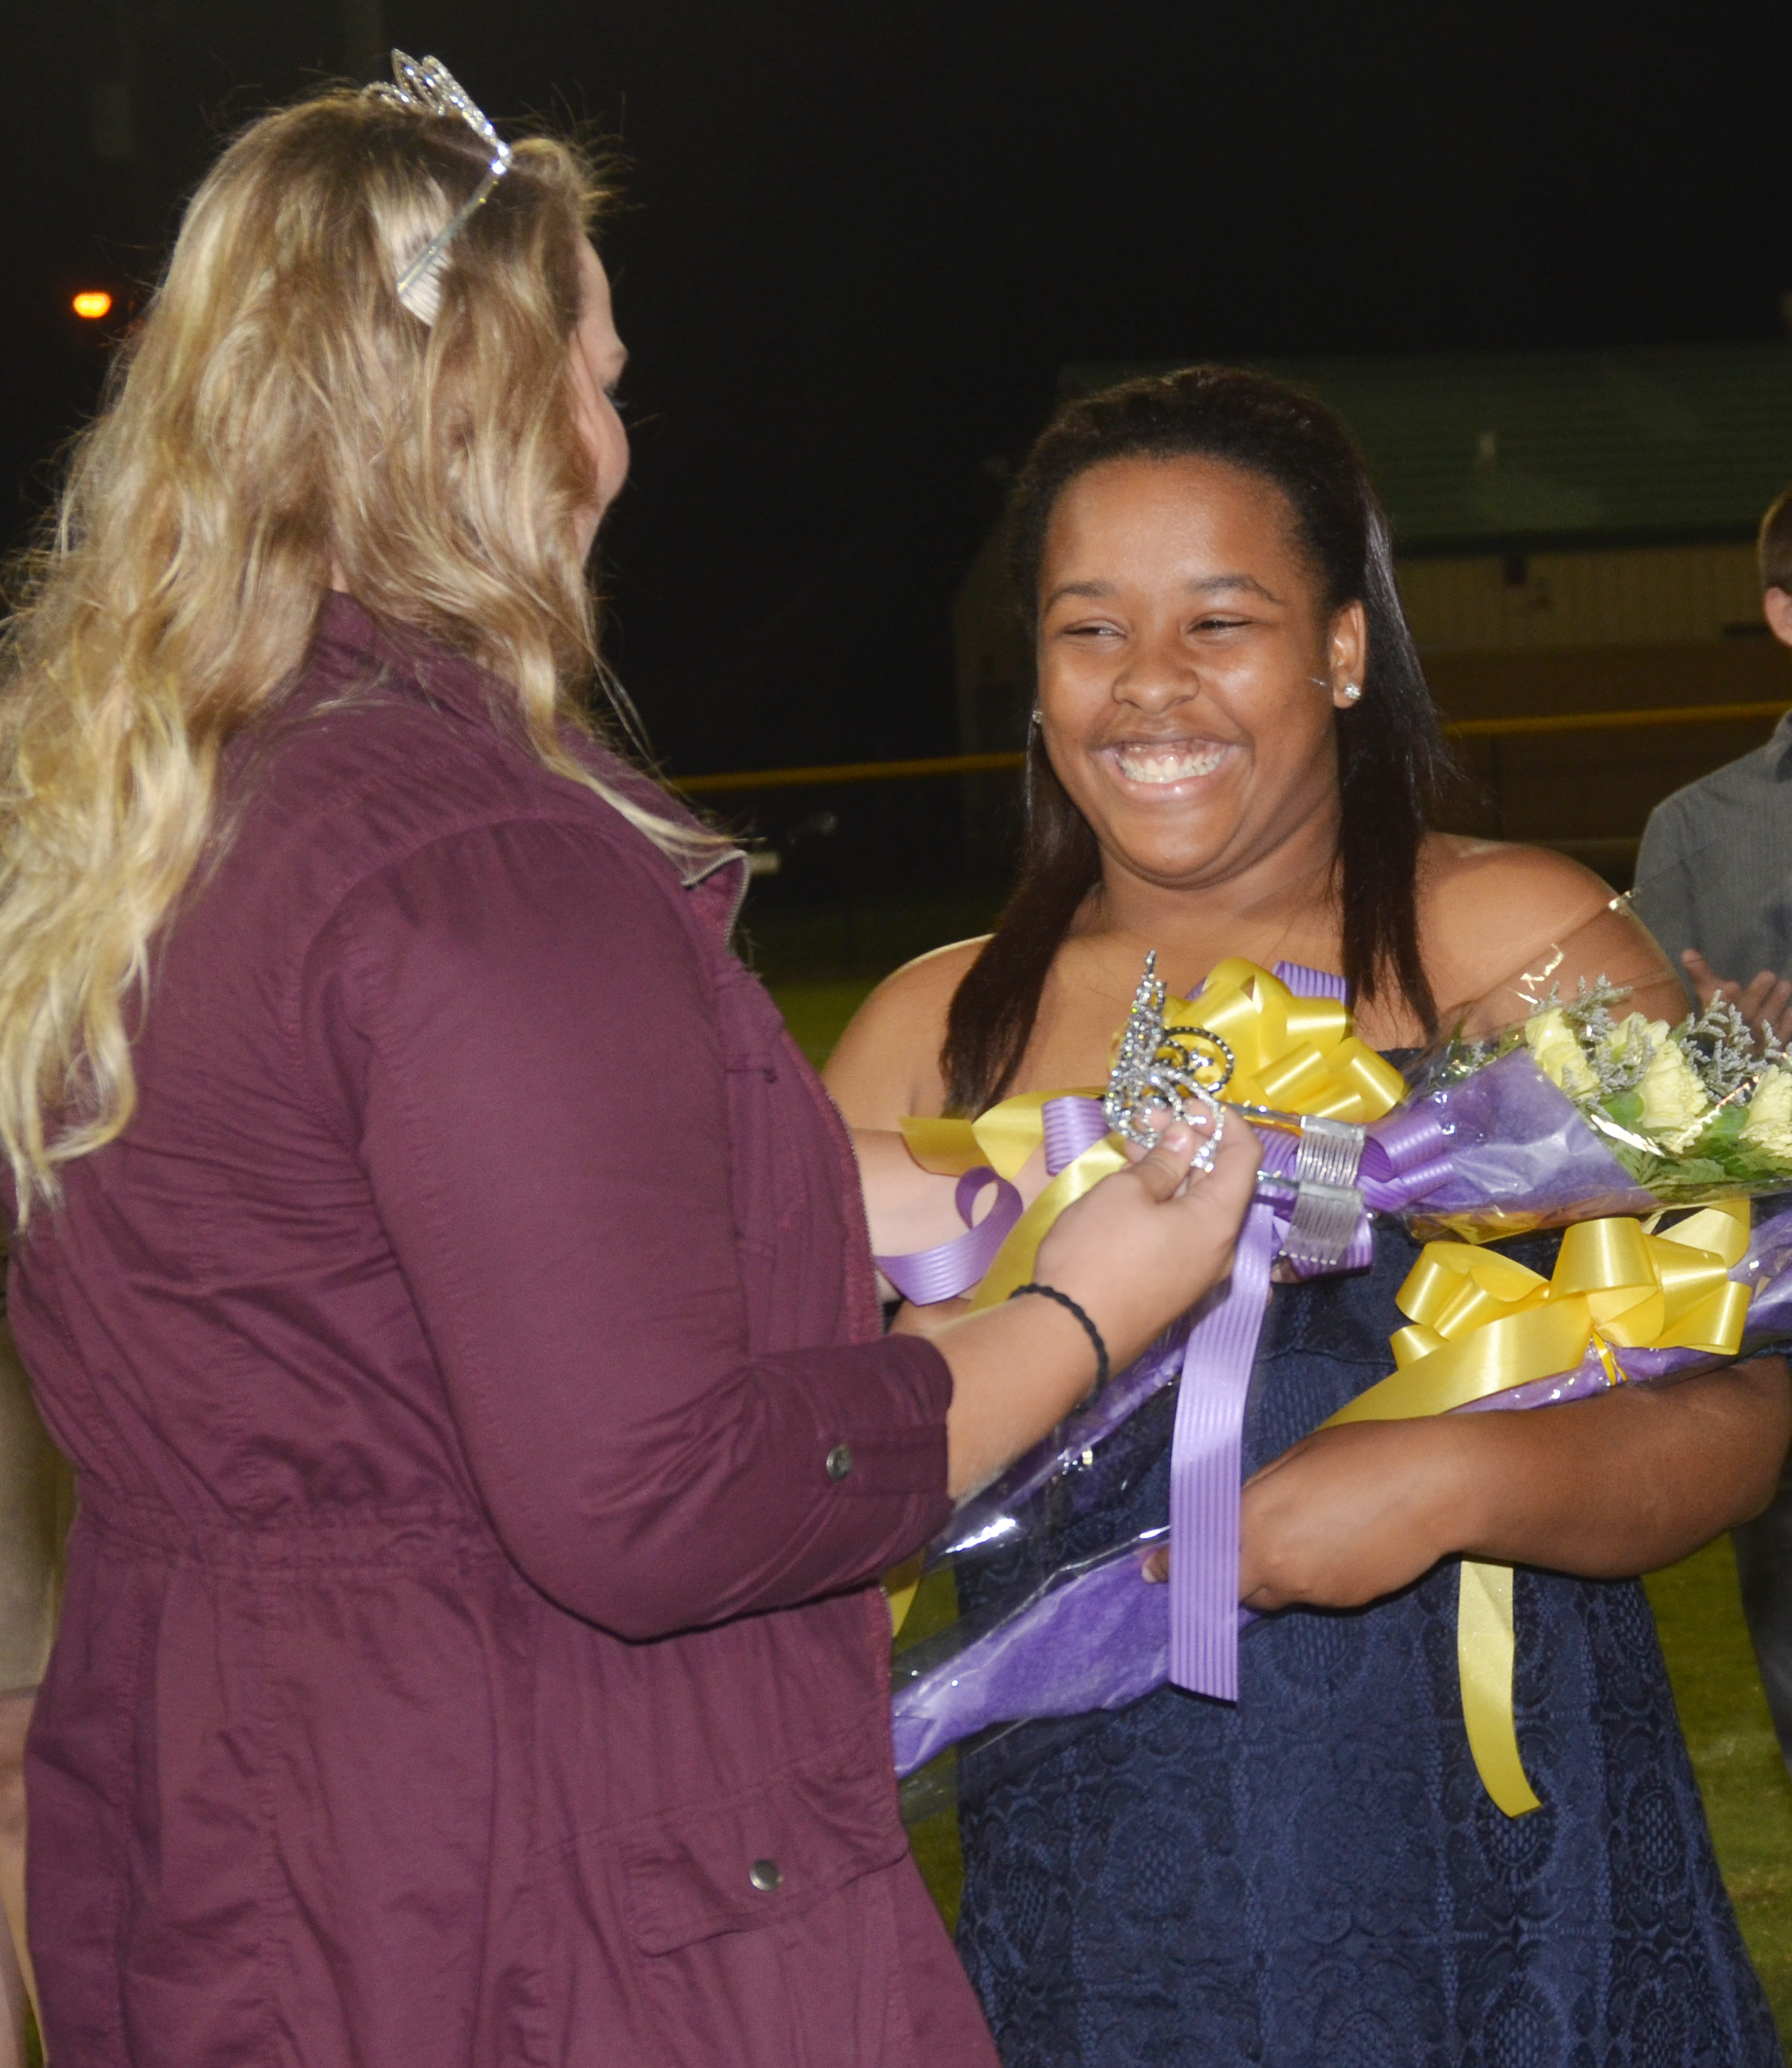 CHS senior Kayla Young smiles as graduate Brenna Wethington crowns her as homecoming queen.